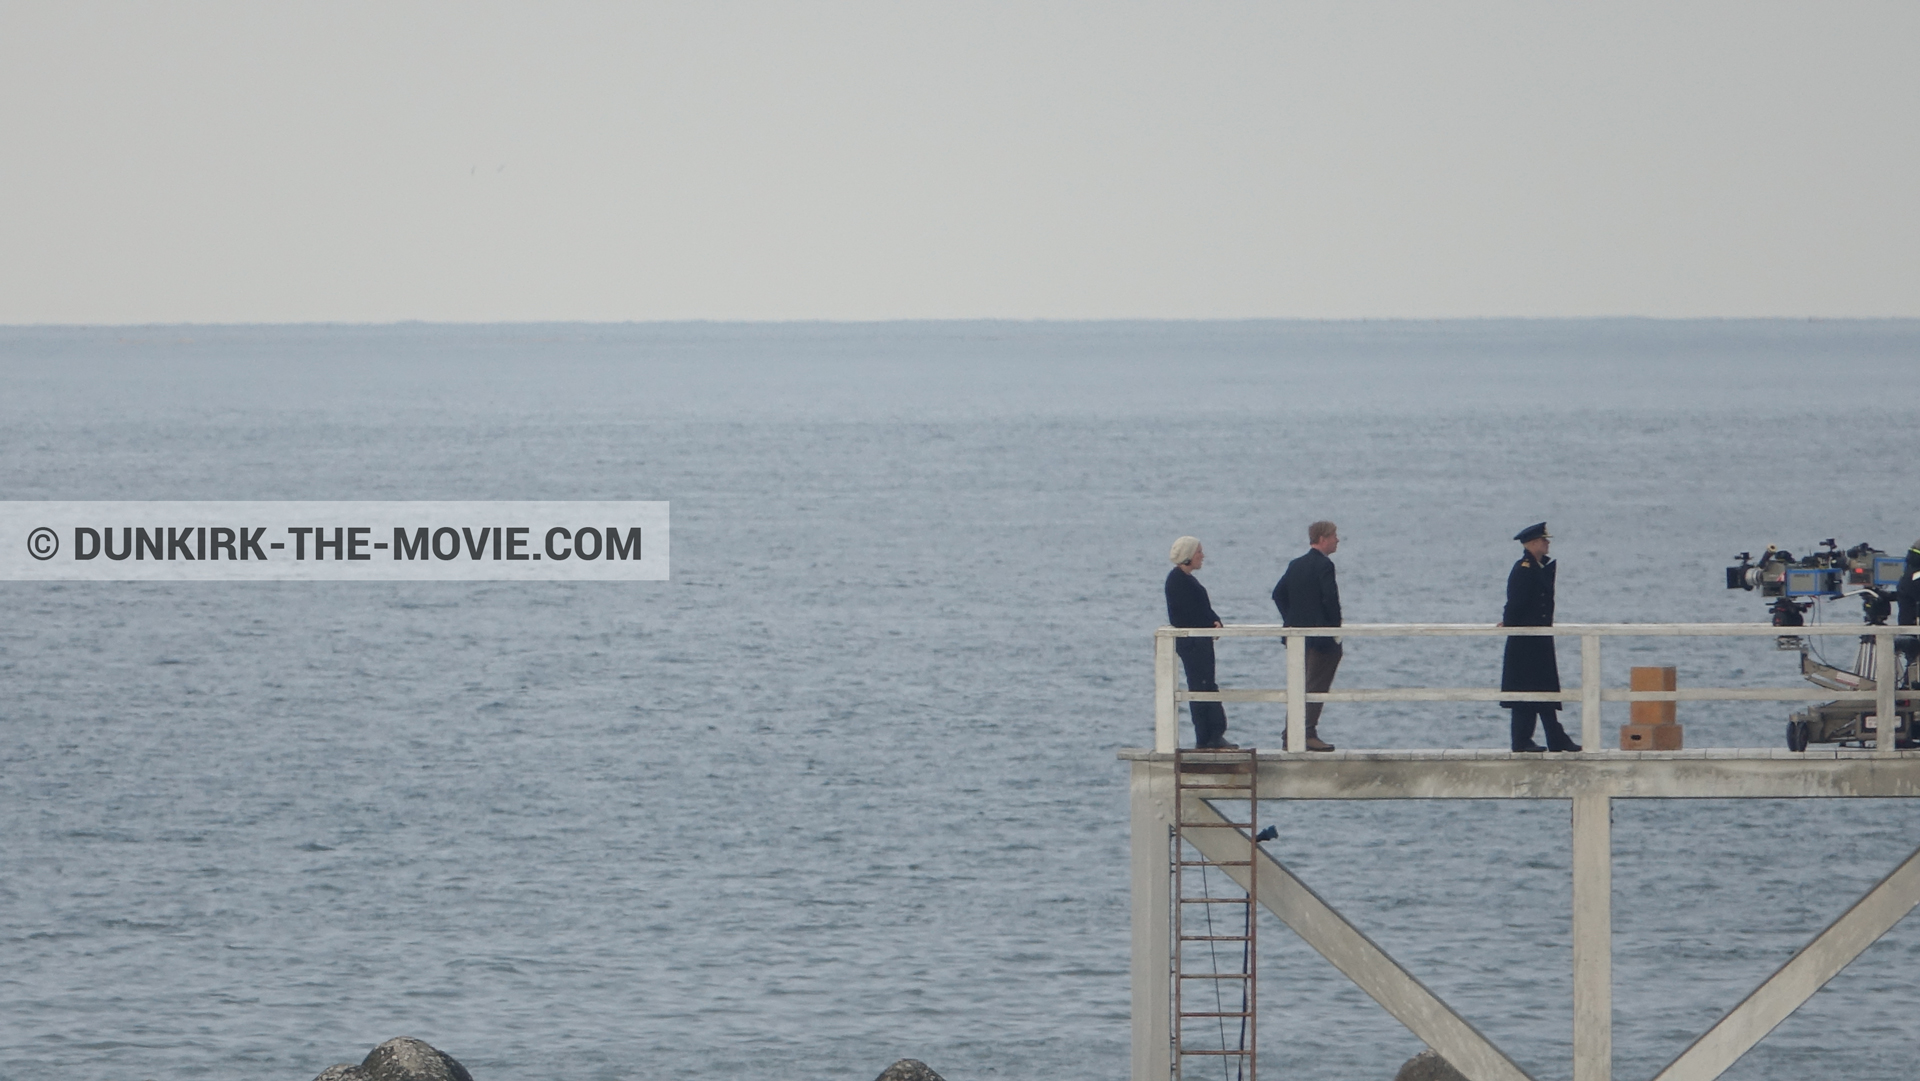 Picture with actor, IMAX camera, EST pier, Christopher Nolan, Emma Thomas,  from behind the scene of the Dunkirk movie by Nolan